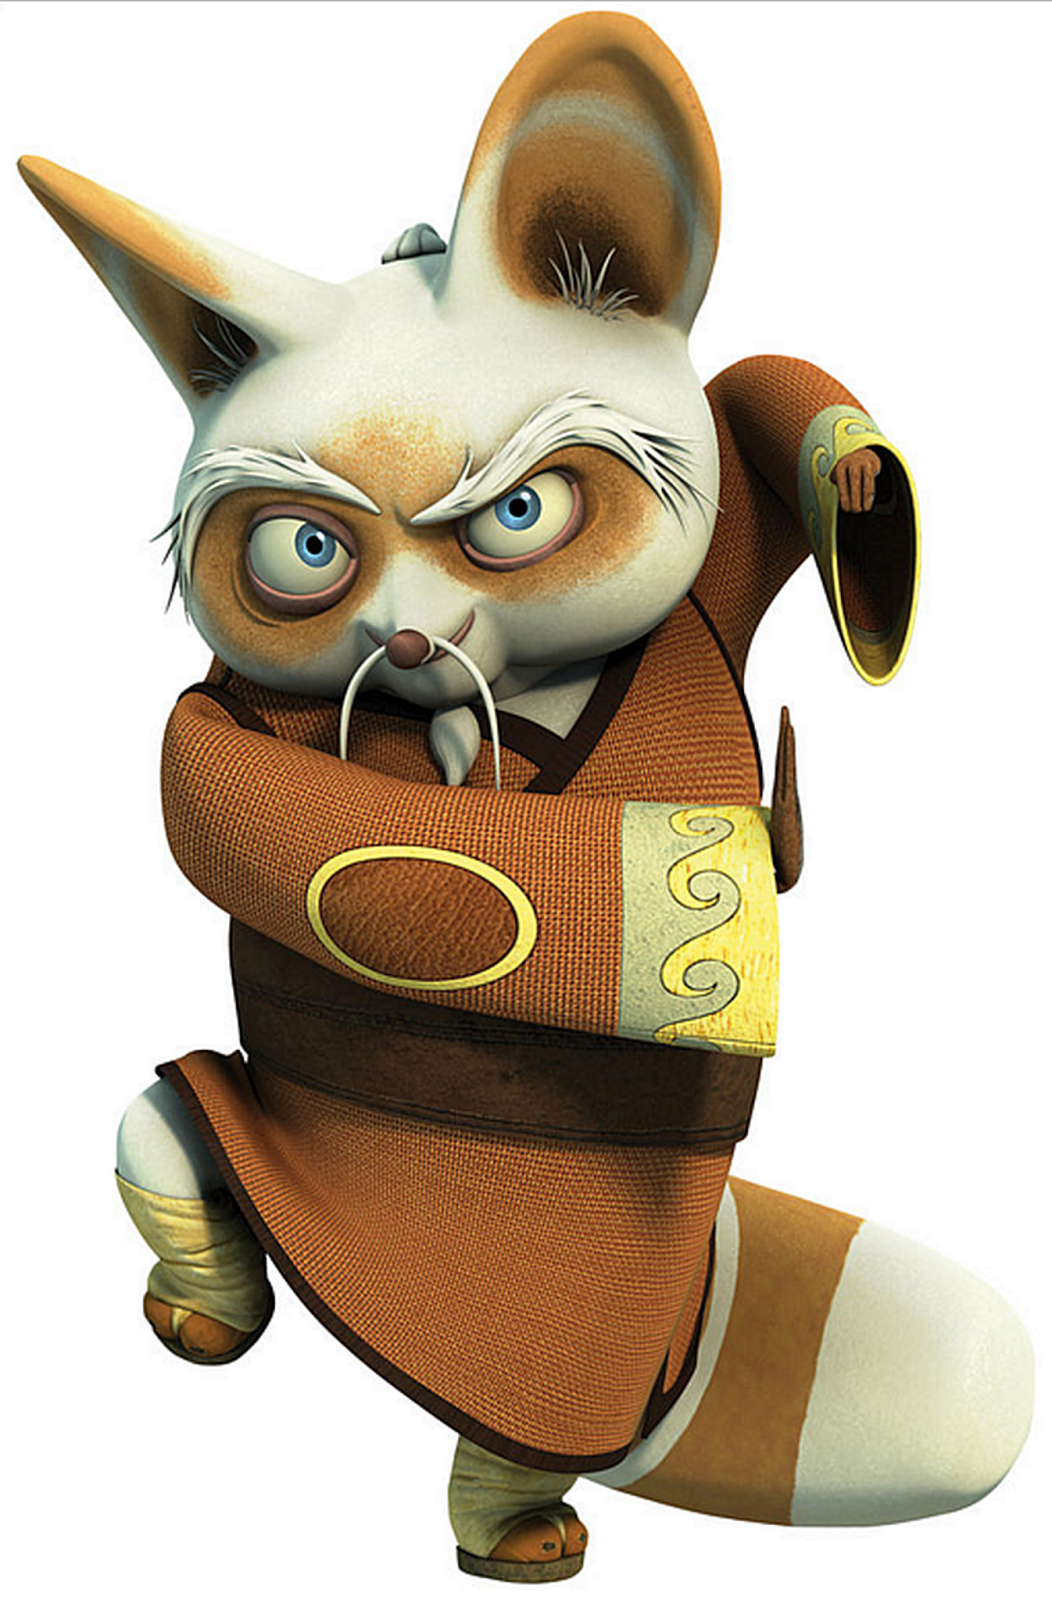 Master Shifu icon free download as PNG and ICO formats, VeryIcon.com